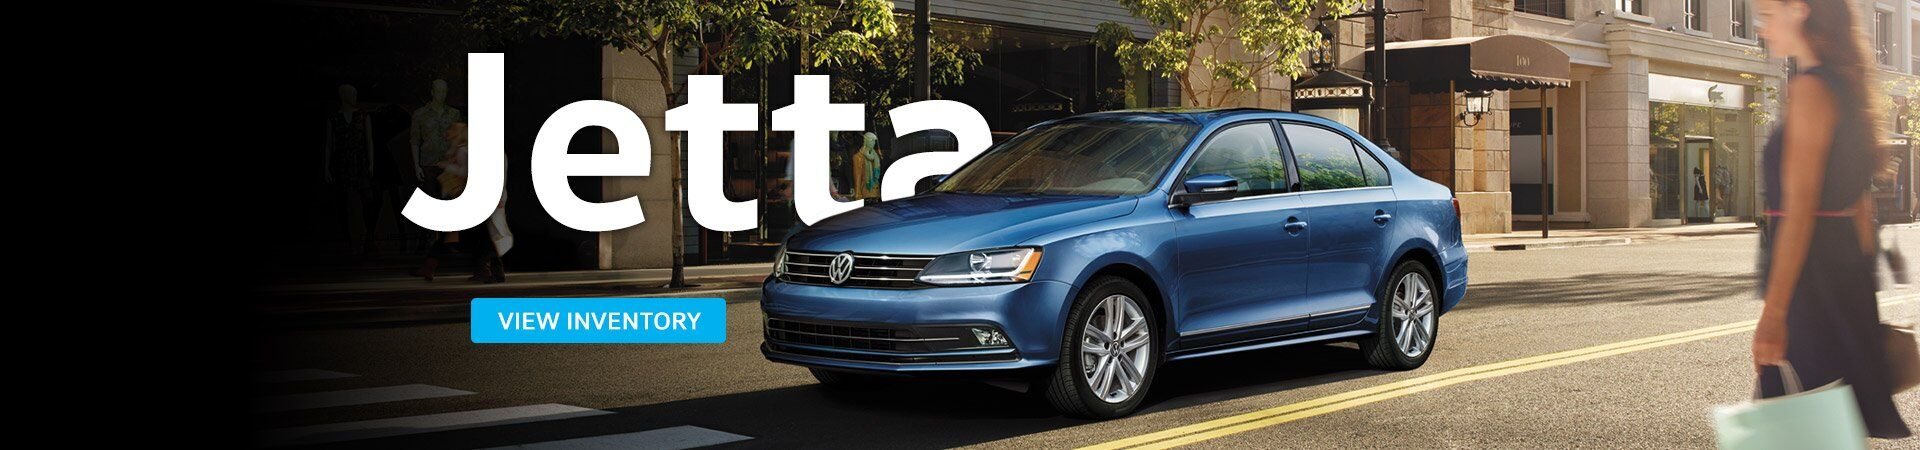 New VW Jetta near Newtown Square